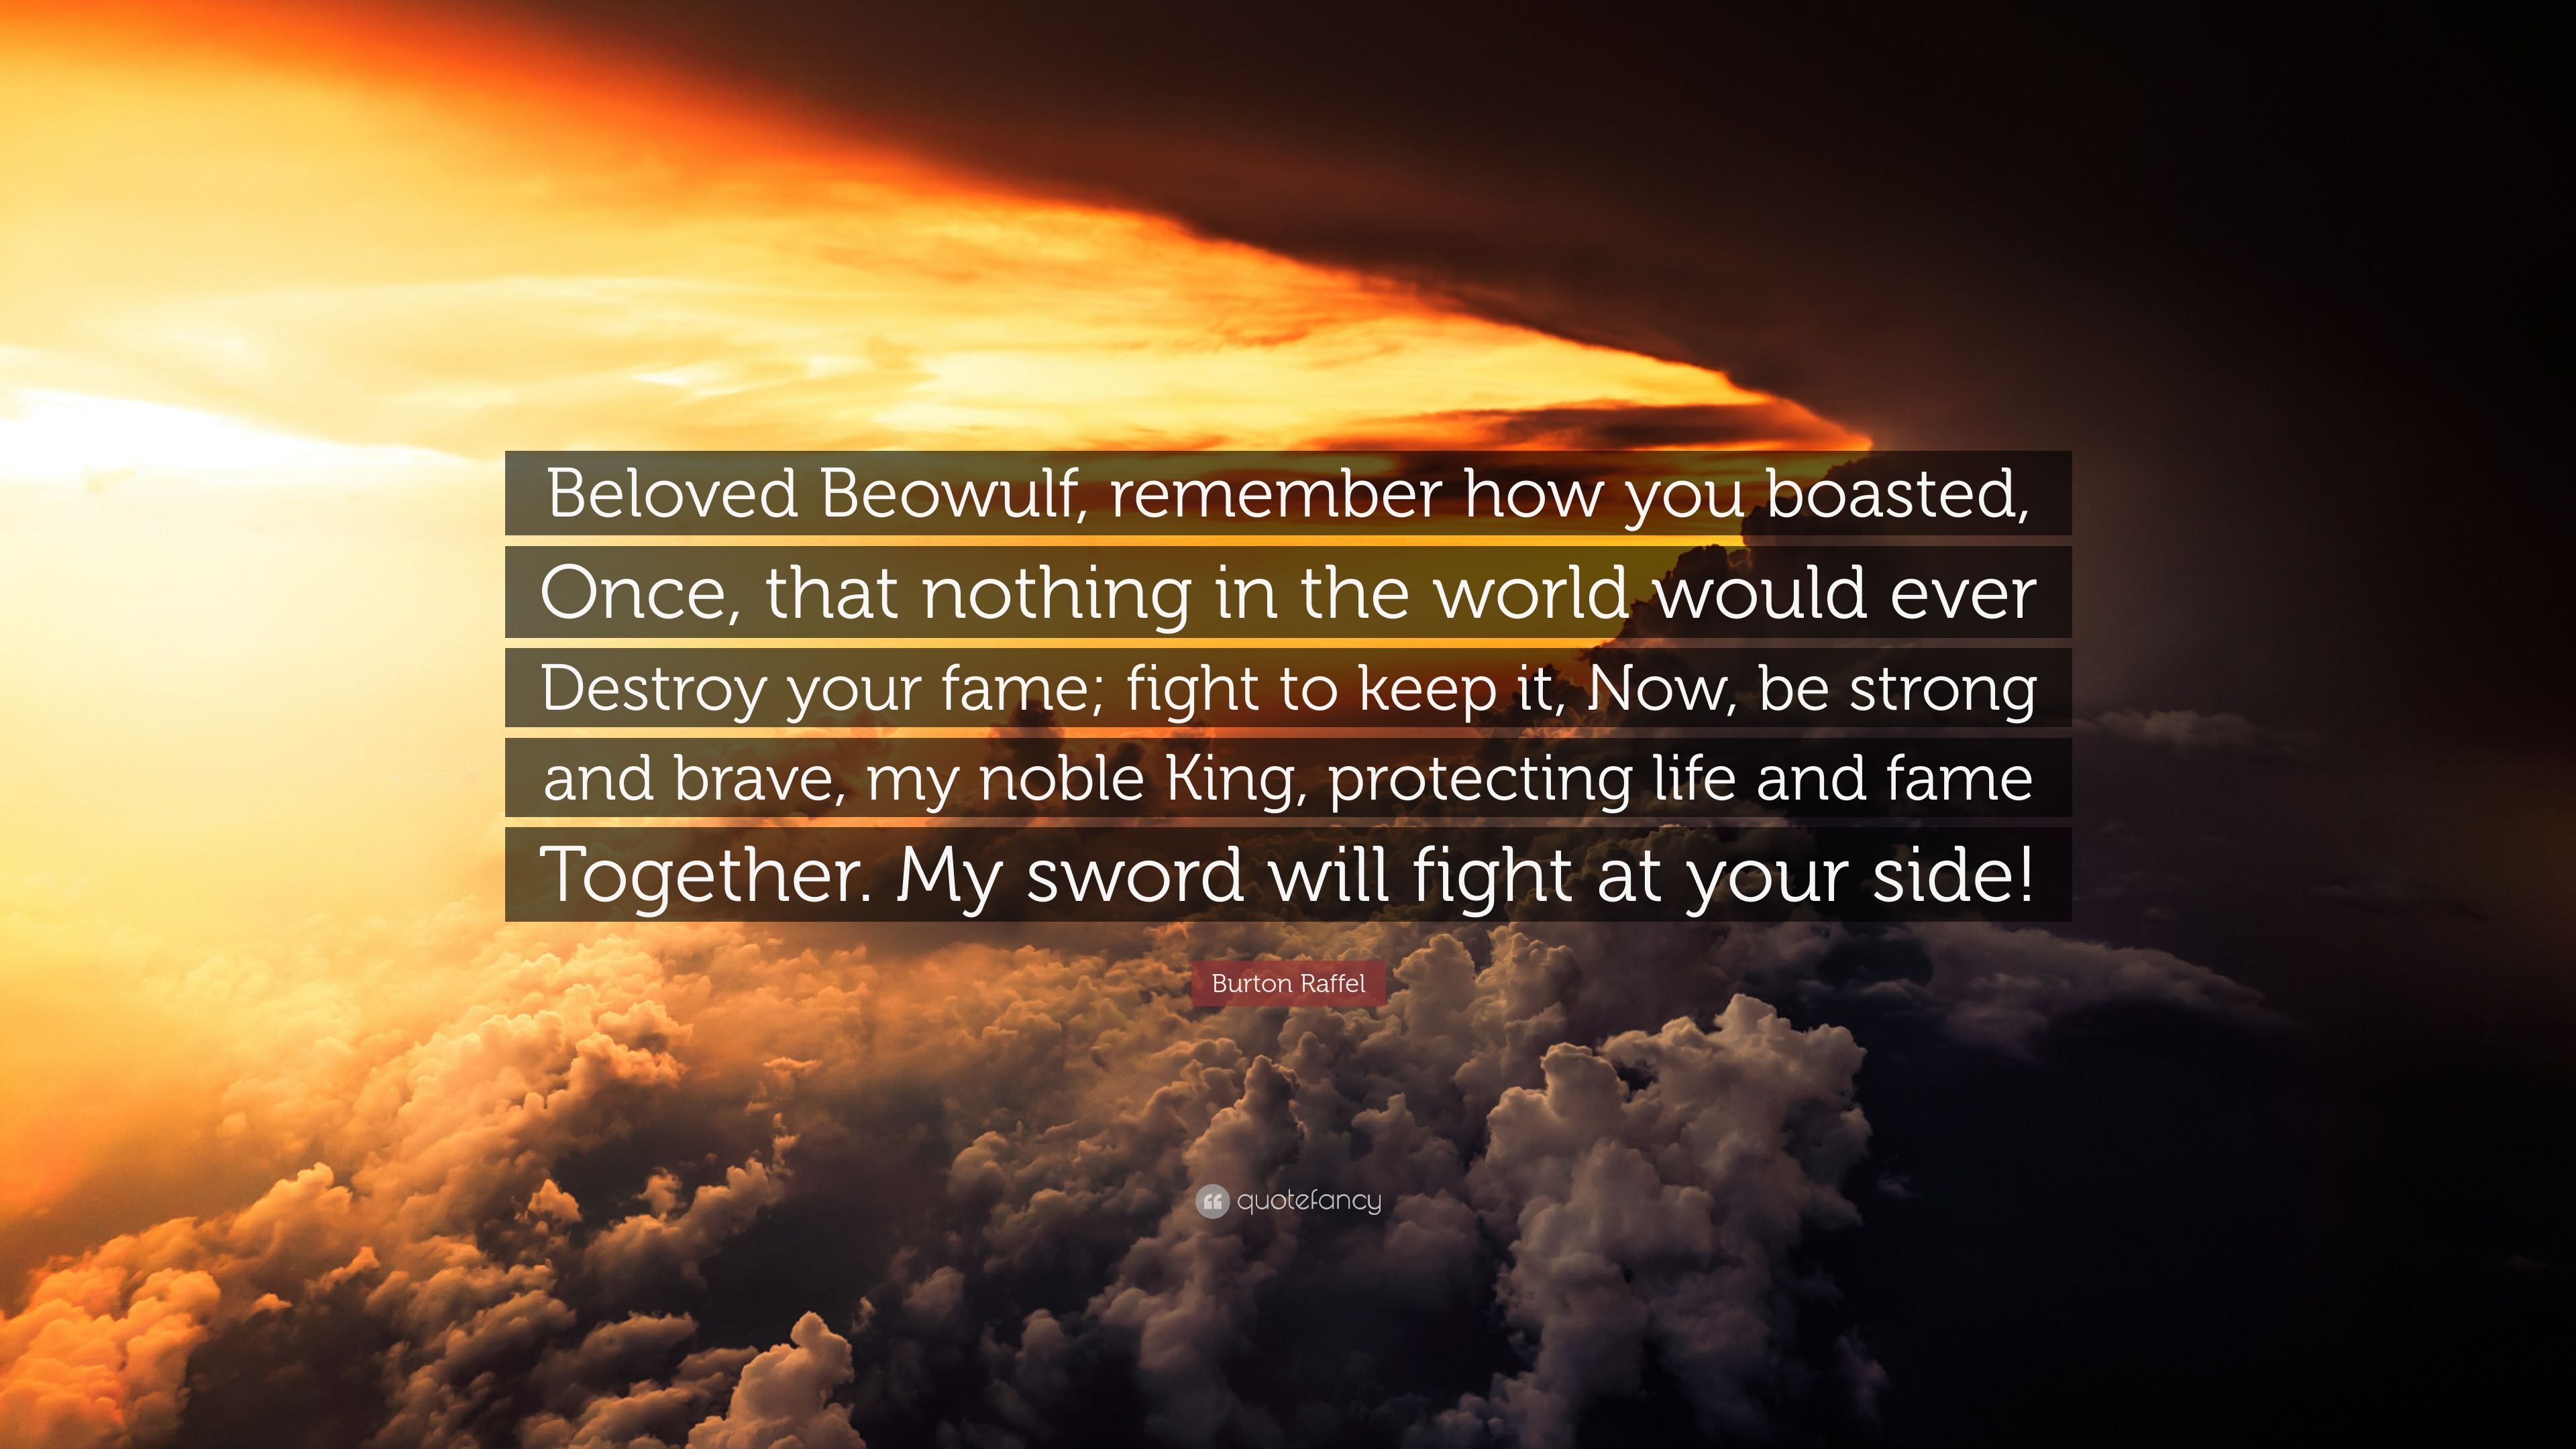 beowulf fame quotes